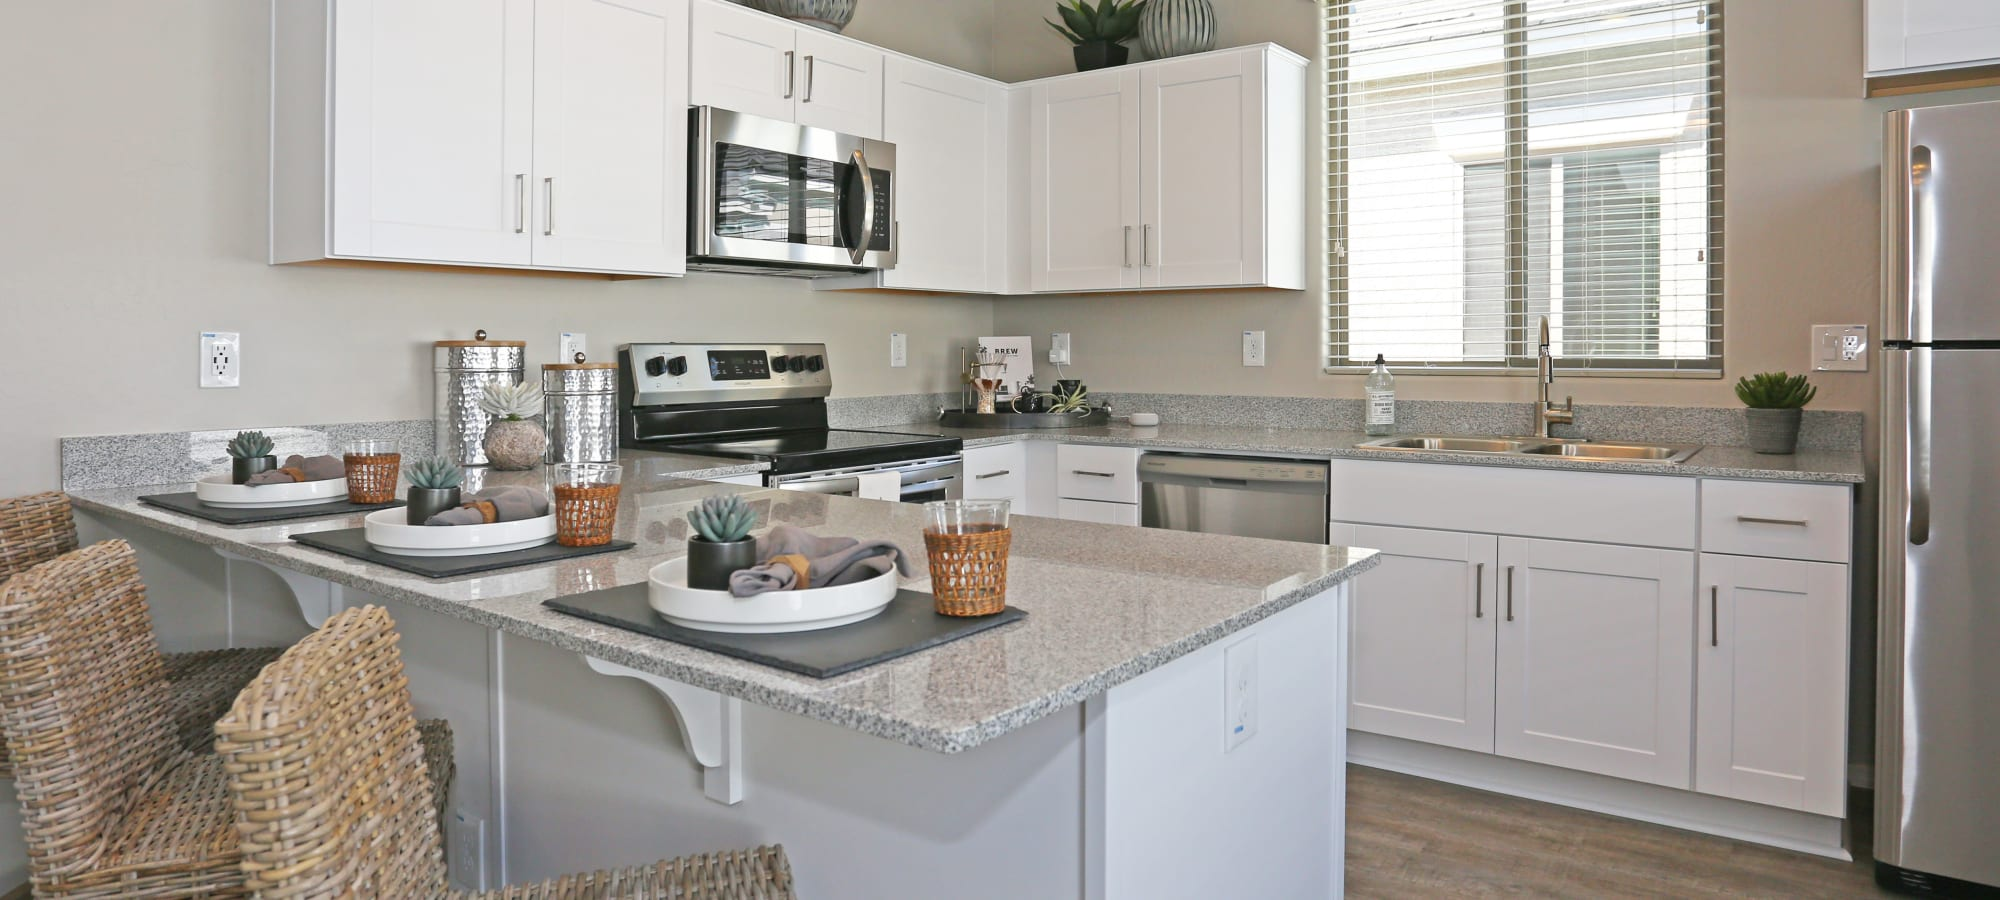 Our apartments in Glendale, Arizona showcase a luxury kitchen